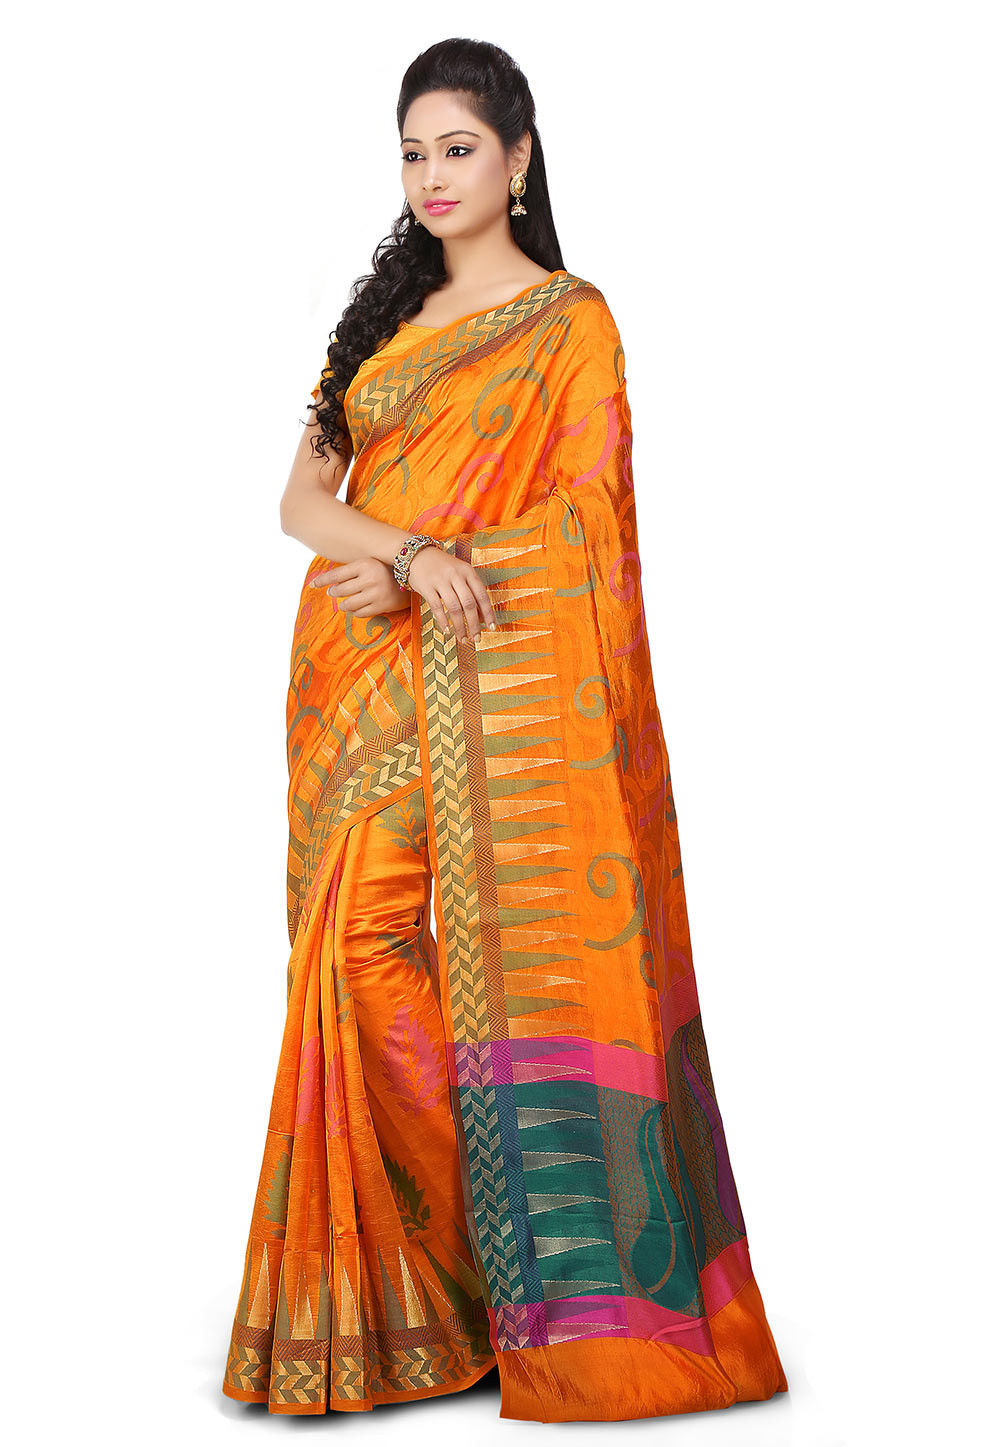 Woven Pure Silk jacquard Saree in Orange